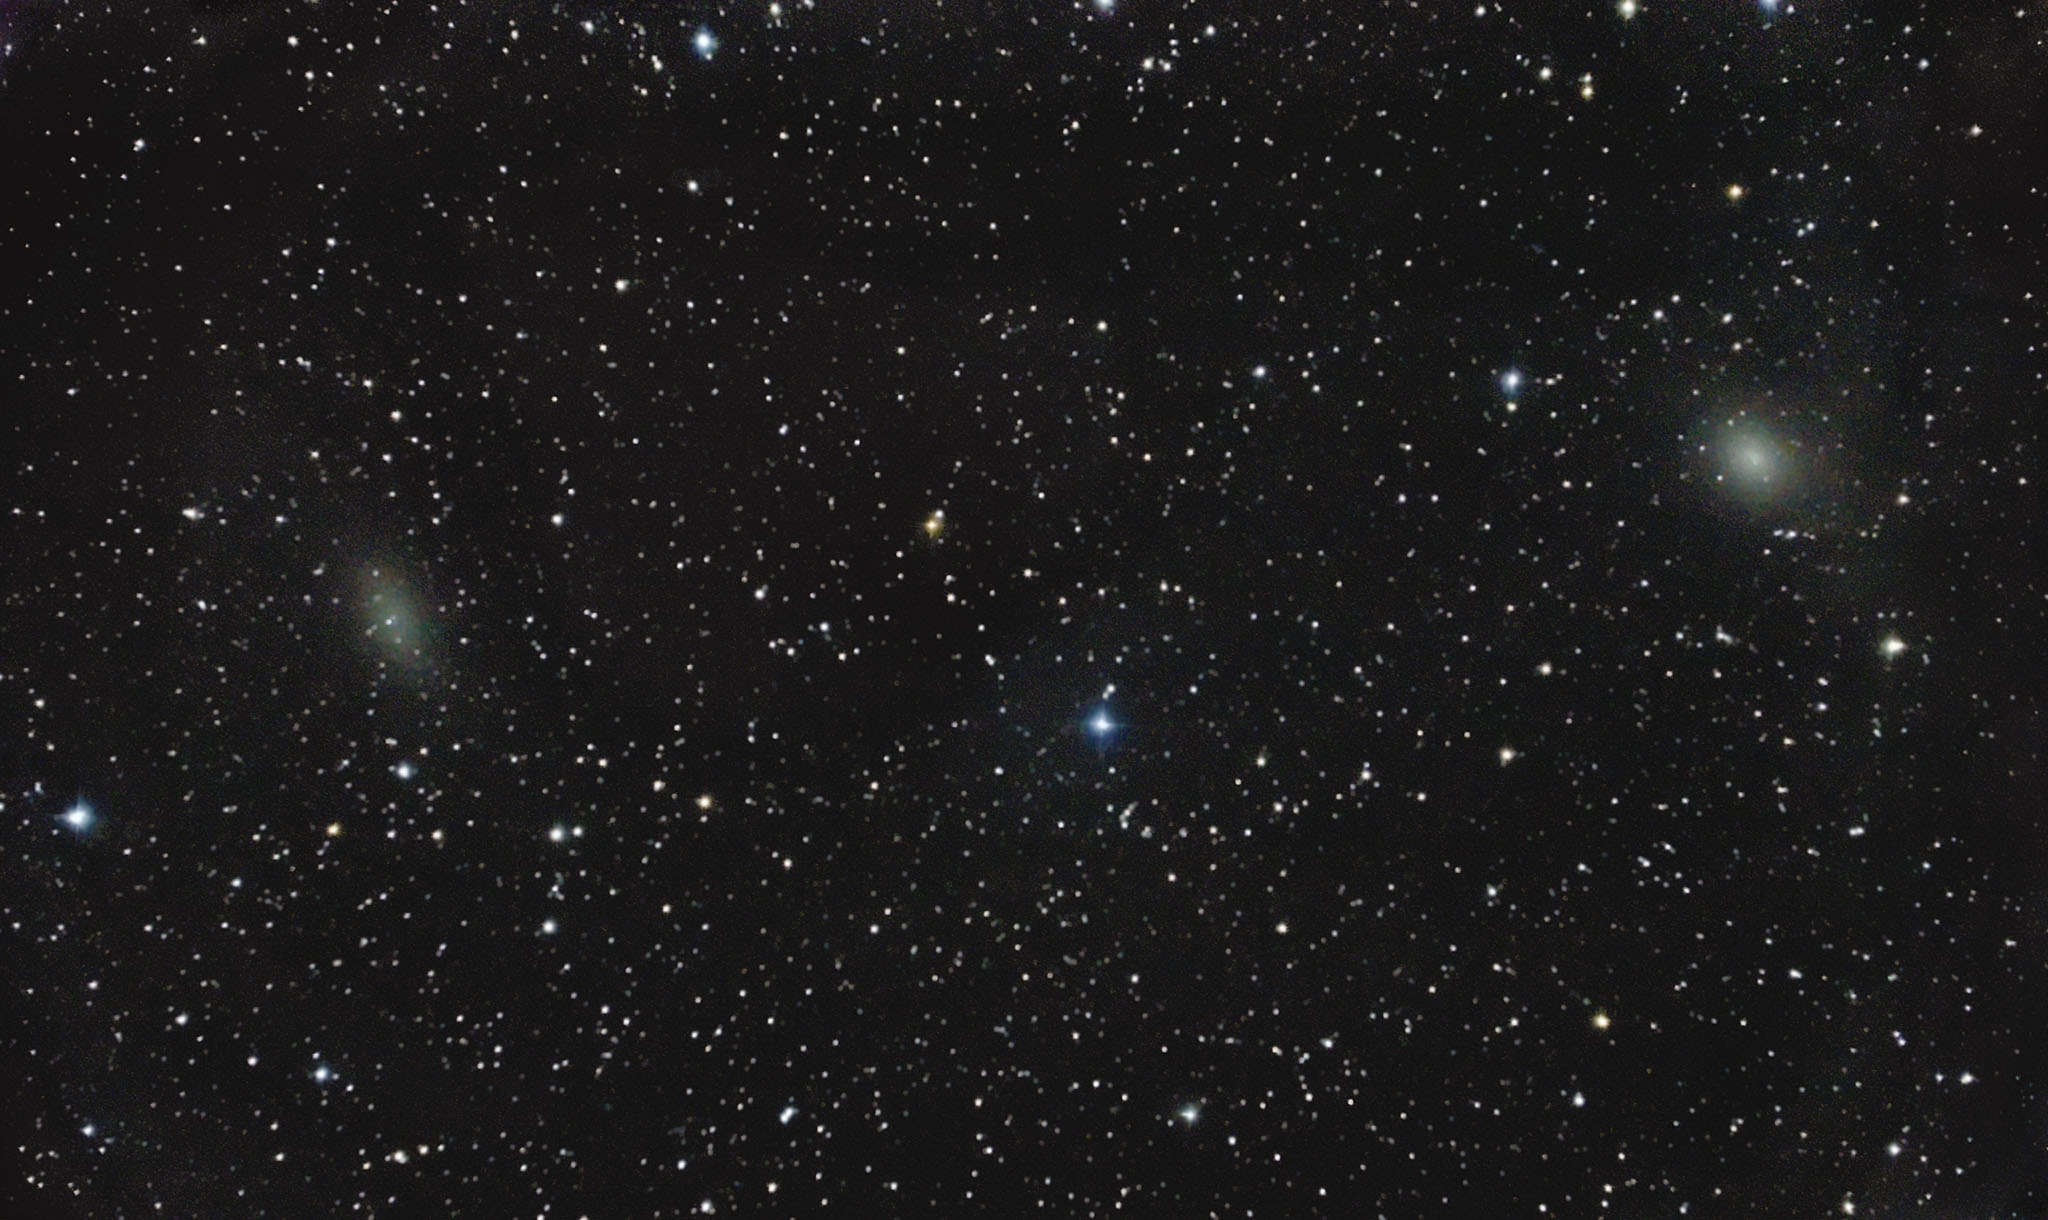 NGC 147 and 185, members of the Local Galaxy Group 局所銀河群